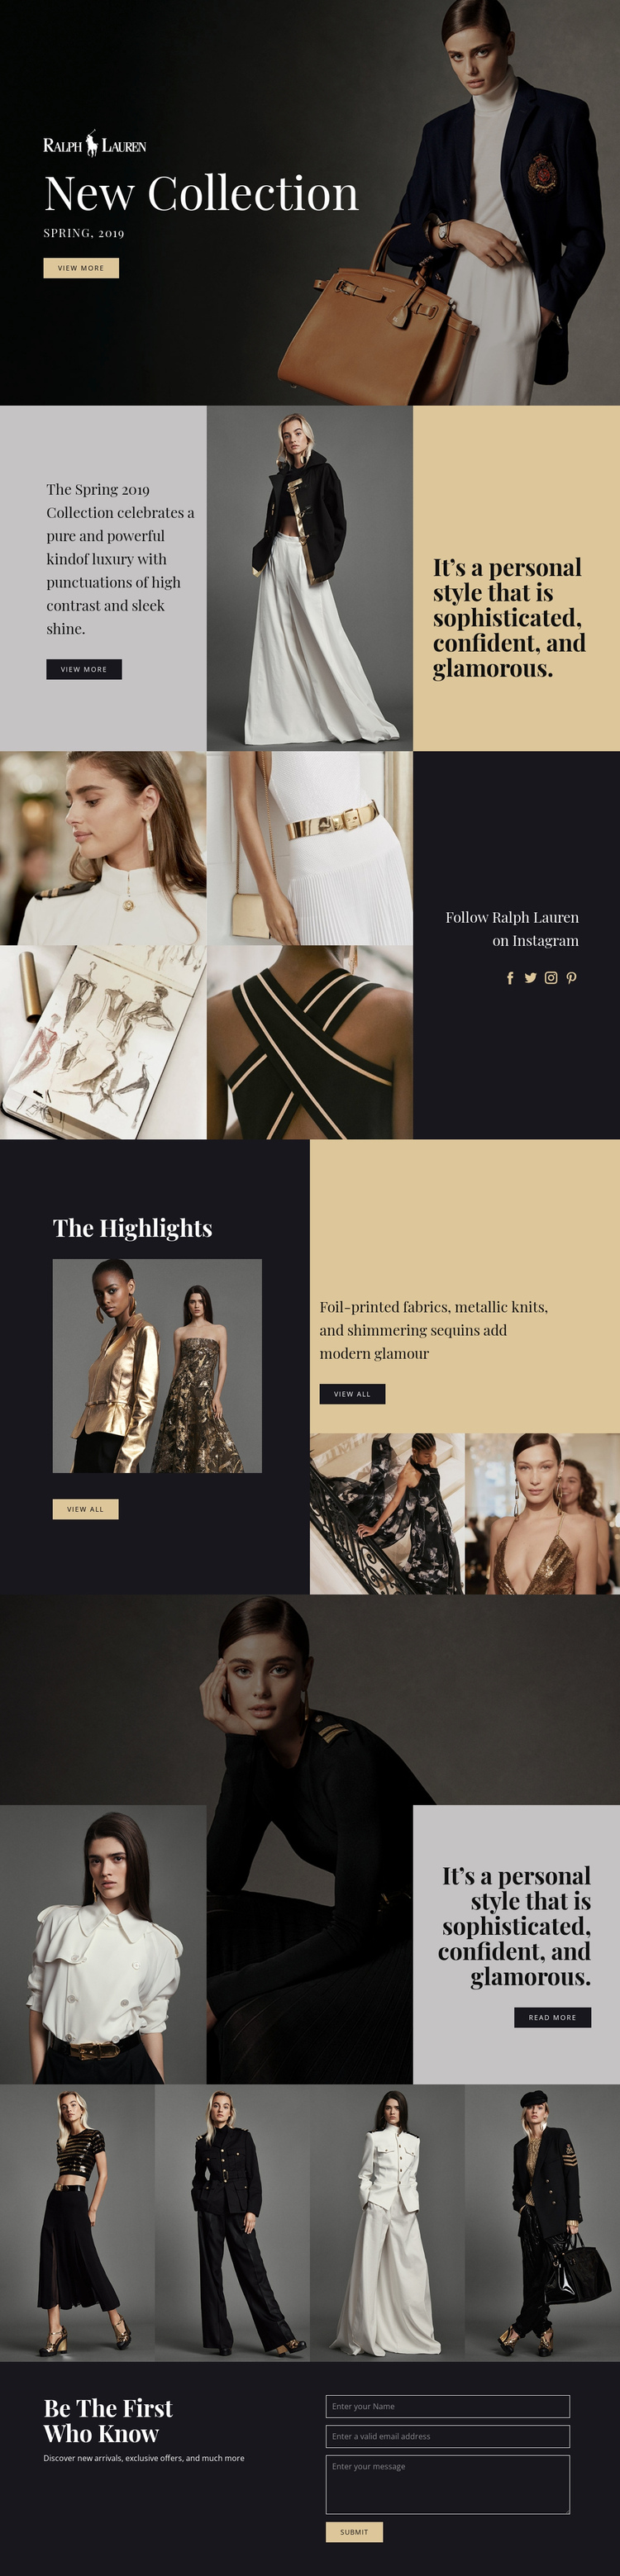 Ralph Lauren fashion One Page Template